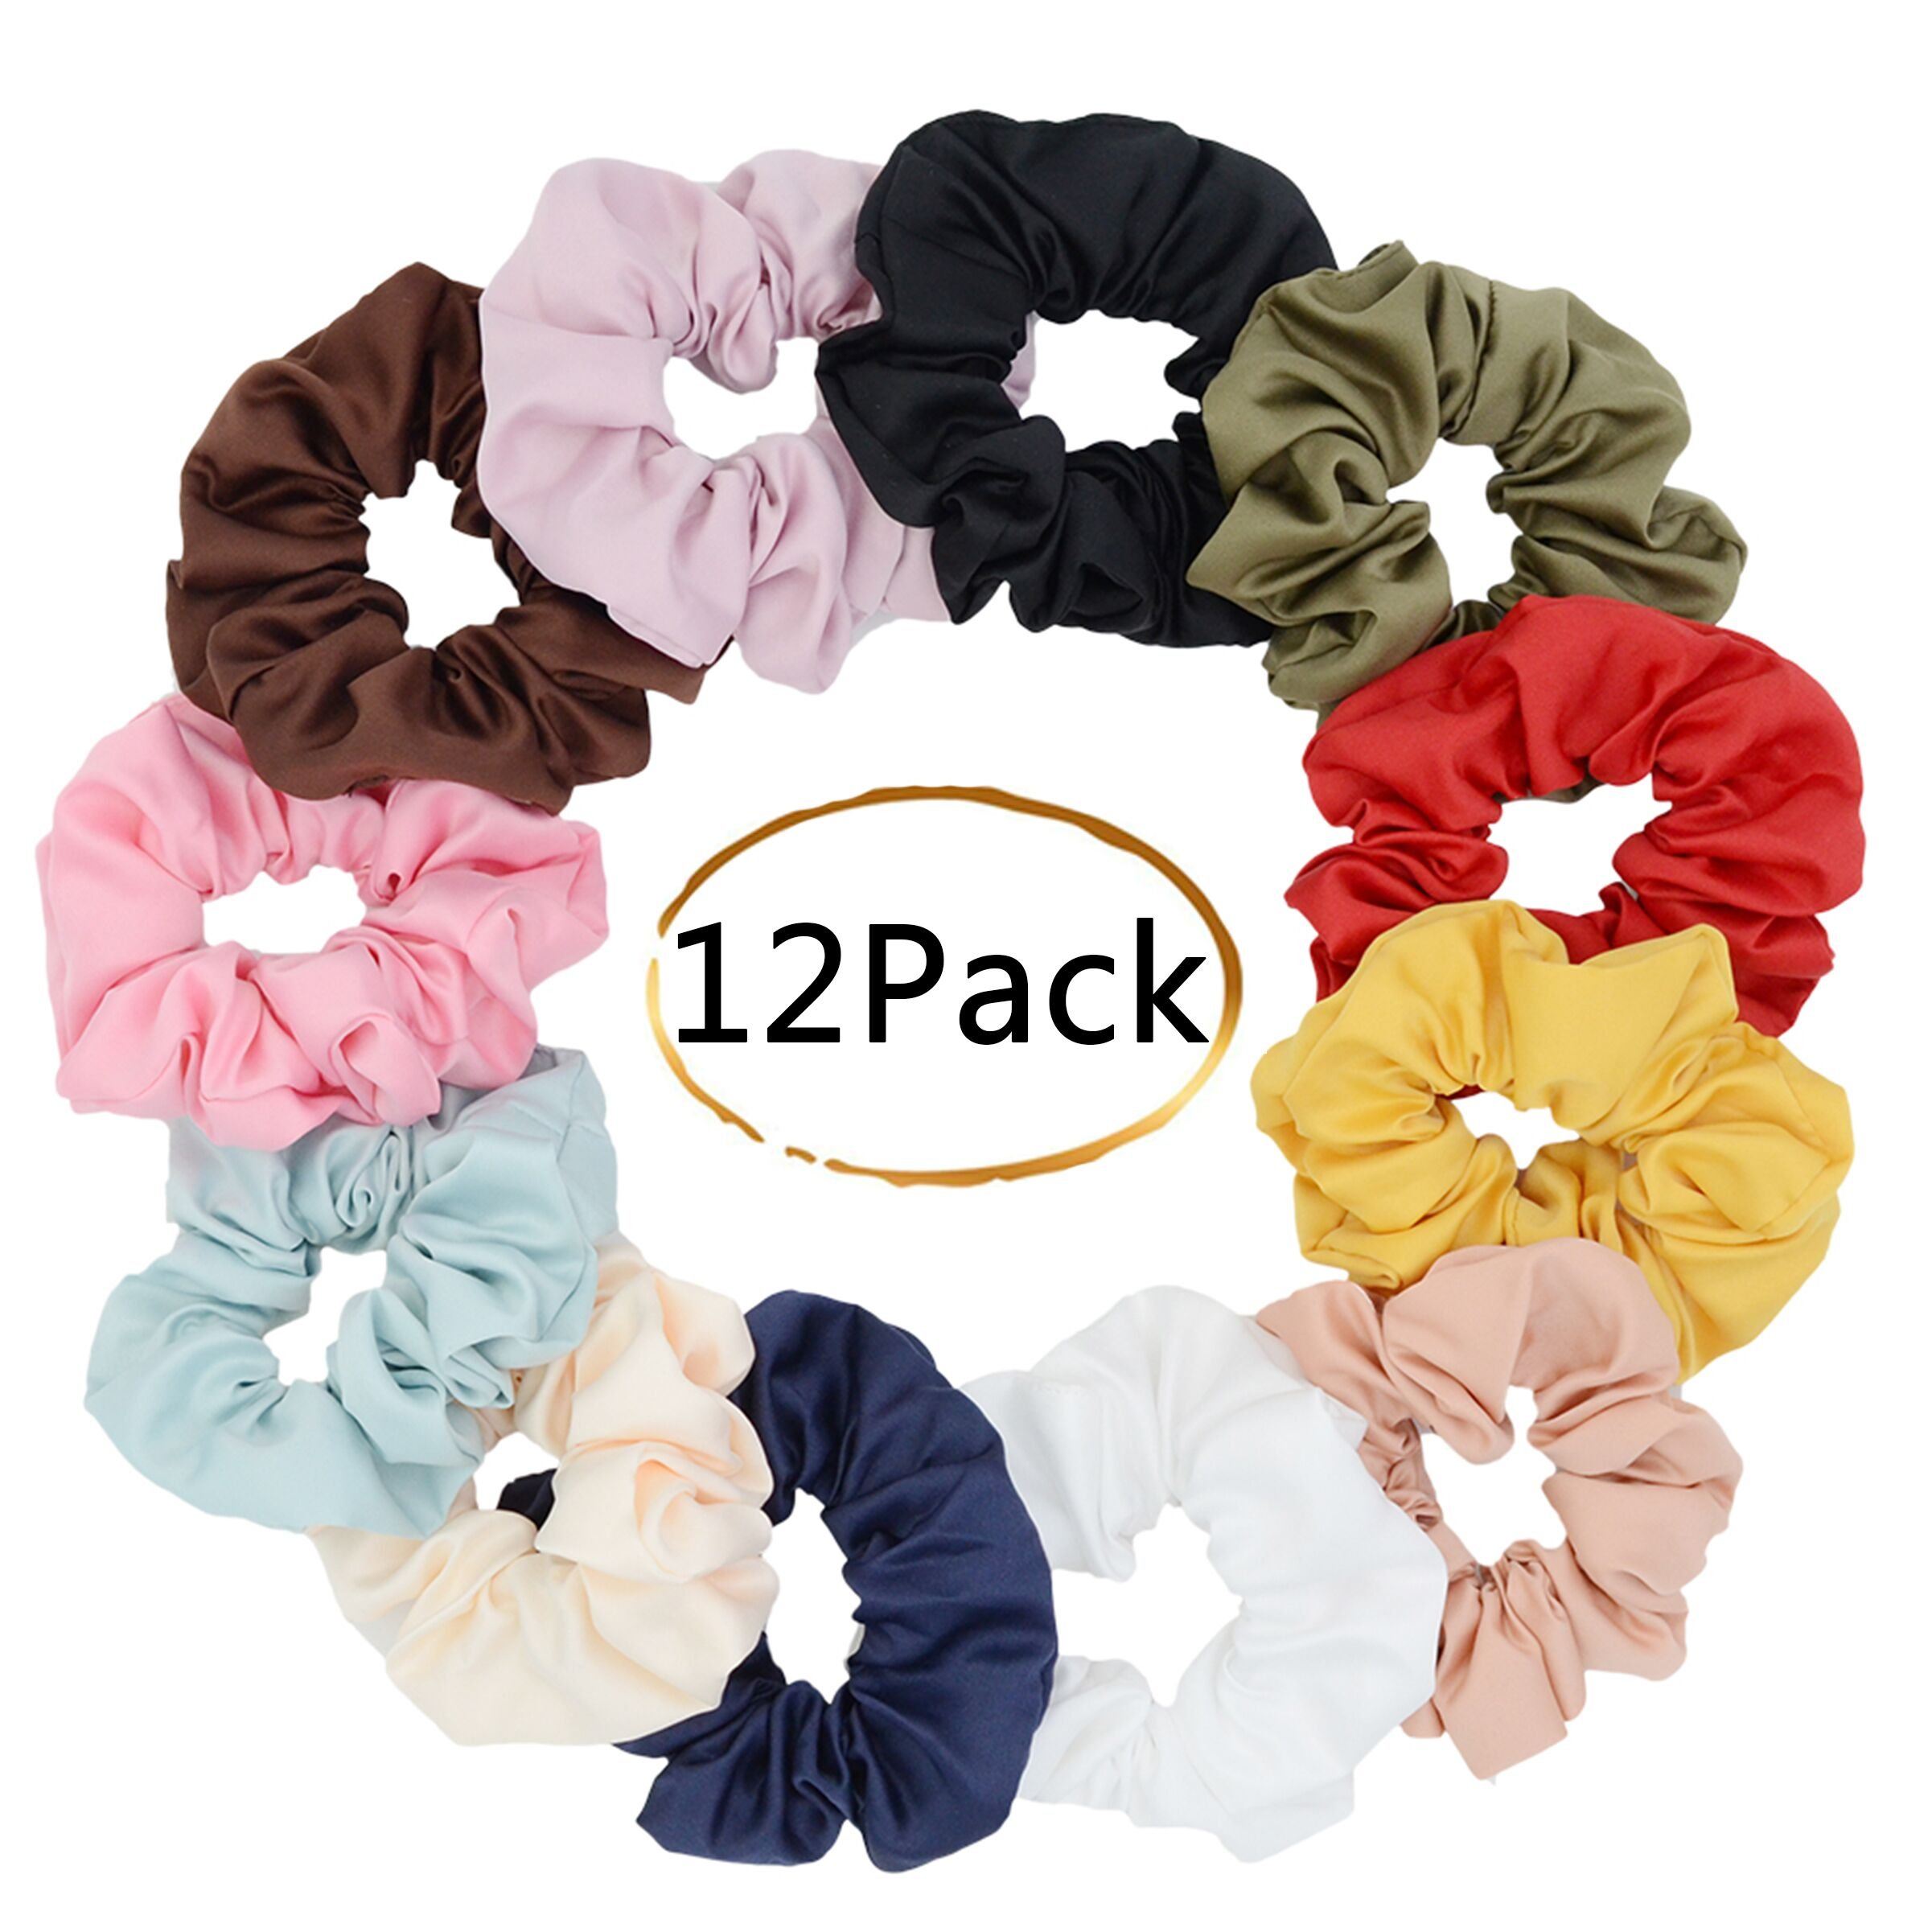 Large Premium Satin Hair Scrunchies for Hair,Chloven Set of 12 Scrunchy Hair Ties for Women Girls